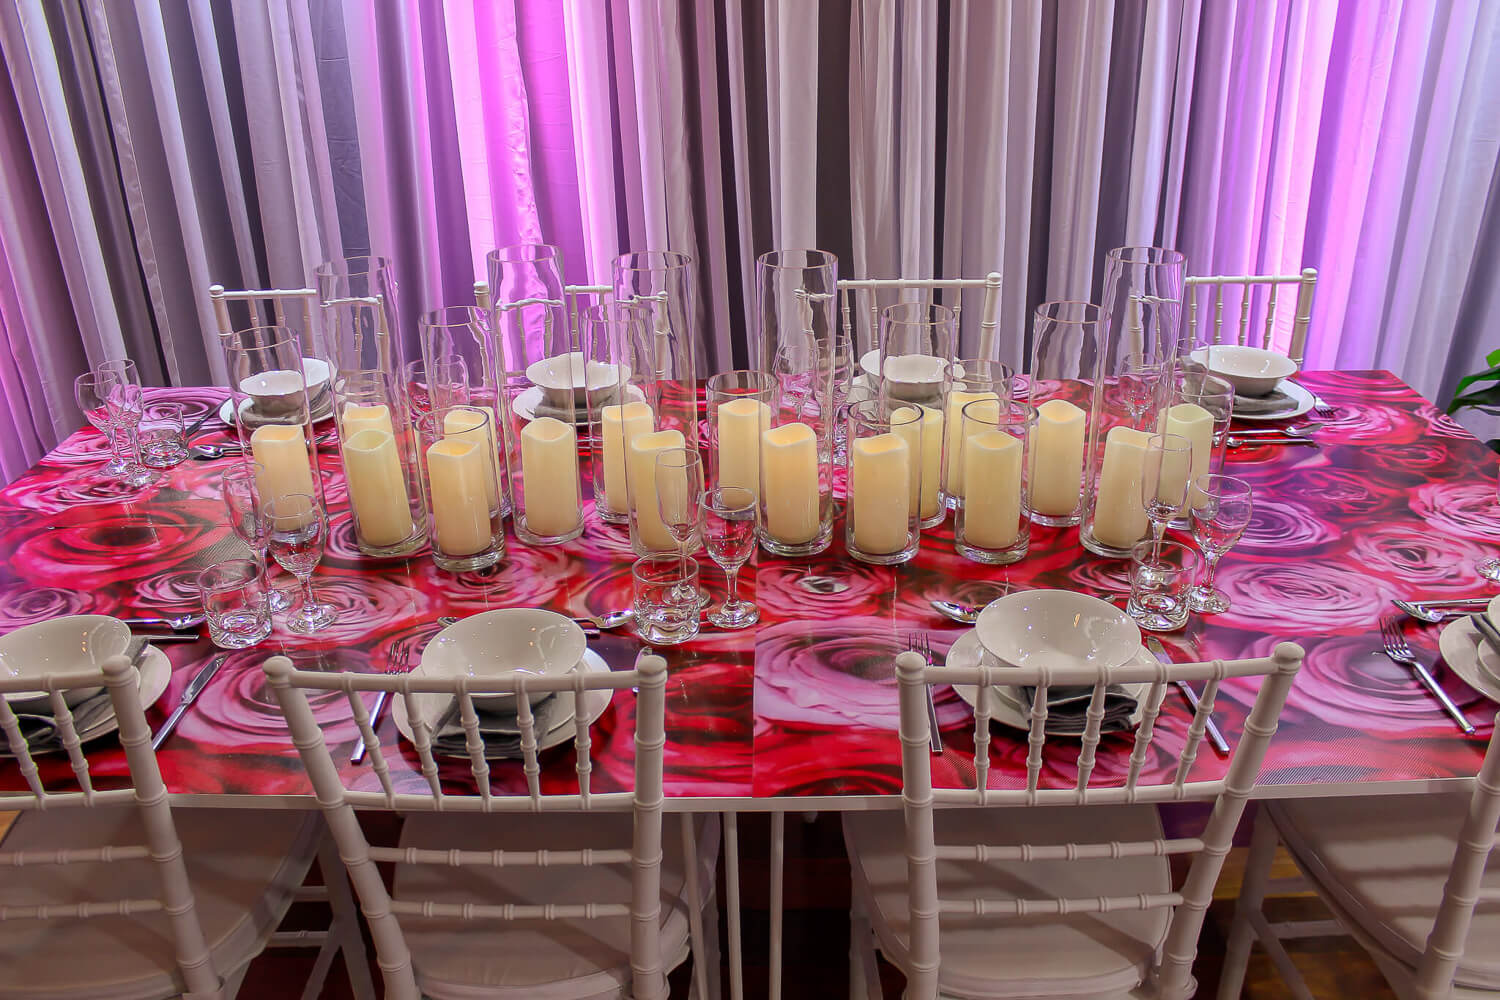 Candle Tablescape Hire Melbourne with uplighting 2